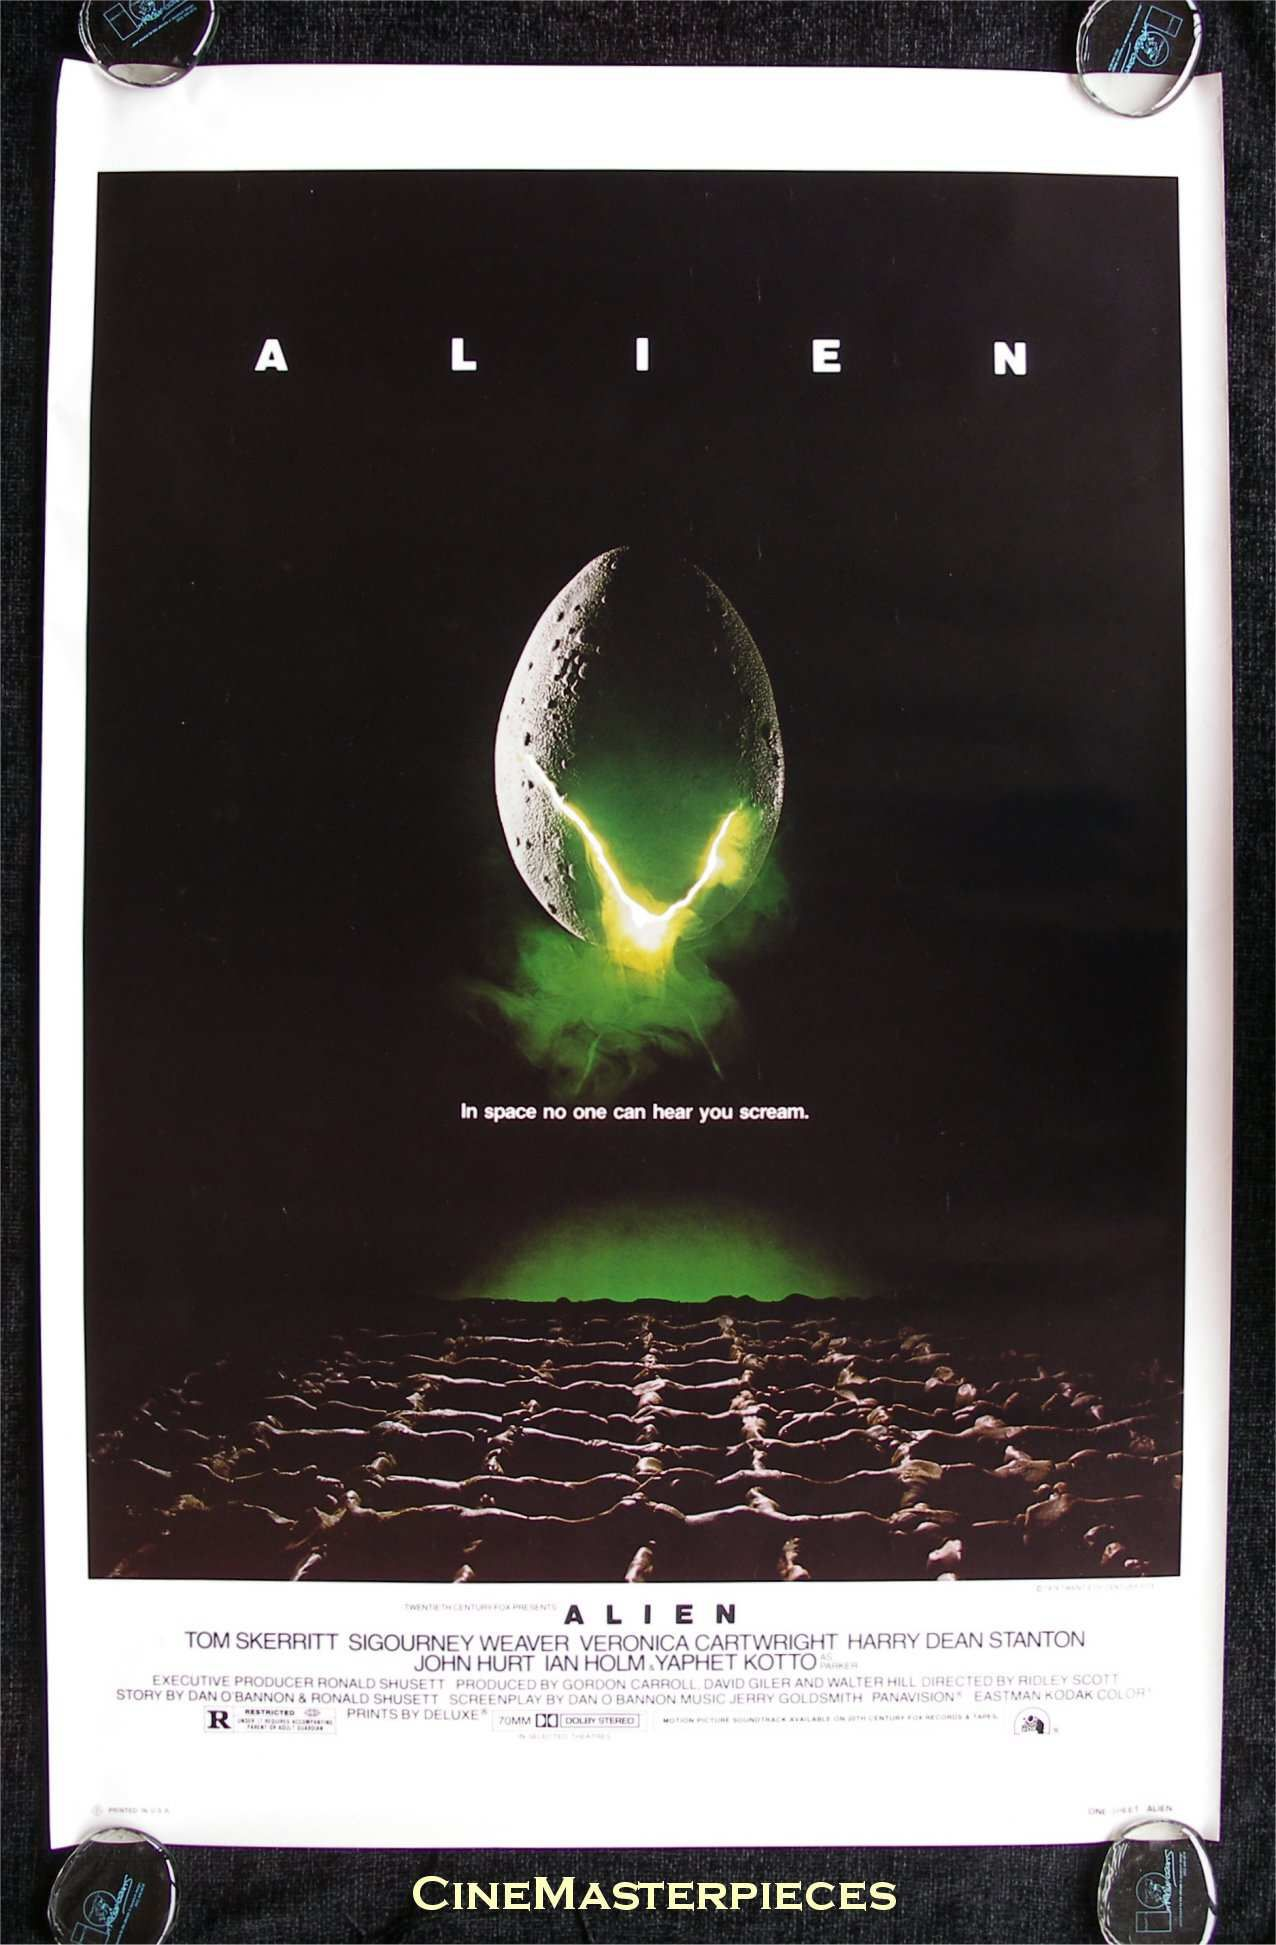 Best Movie Posters Of All Time 100 Greatest Movie Posters Of All